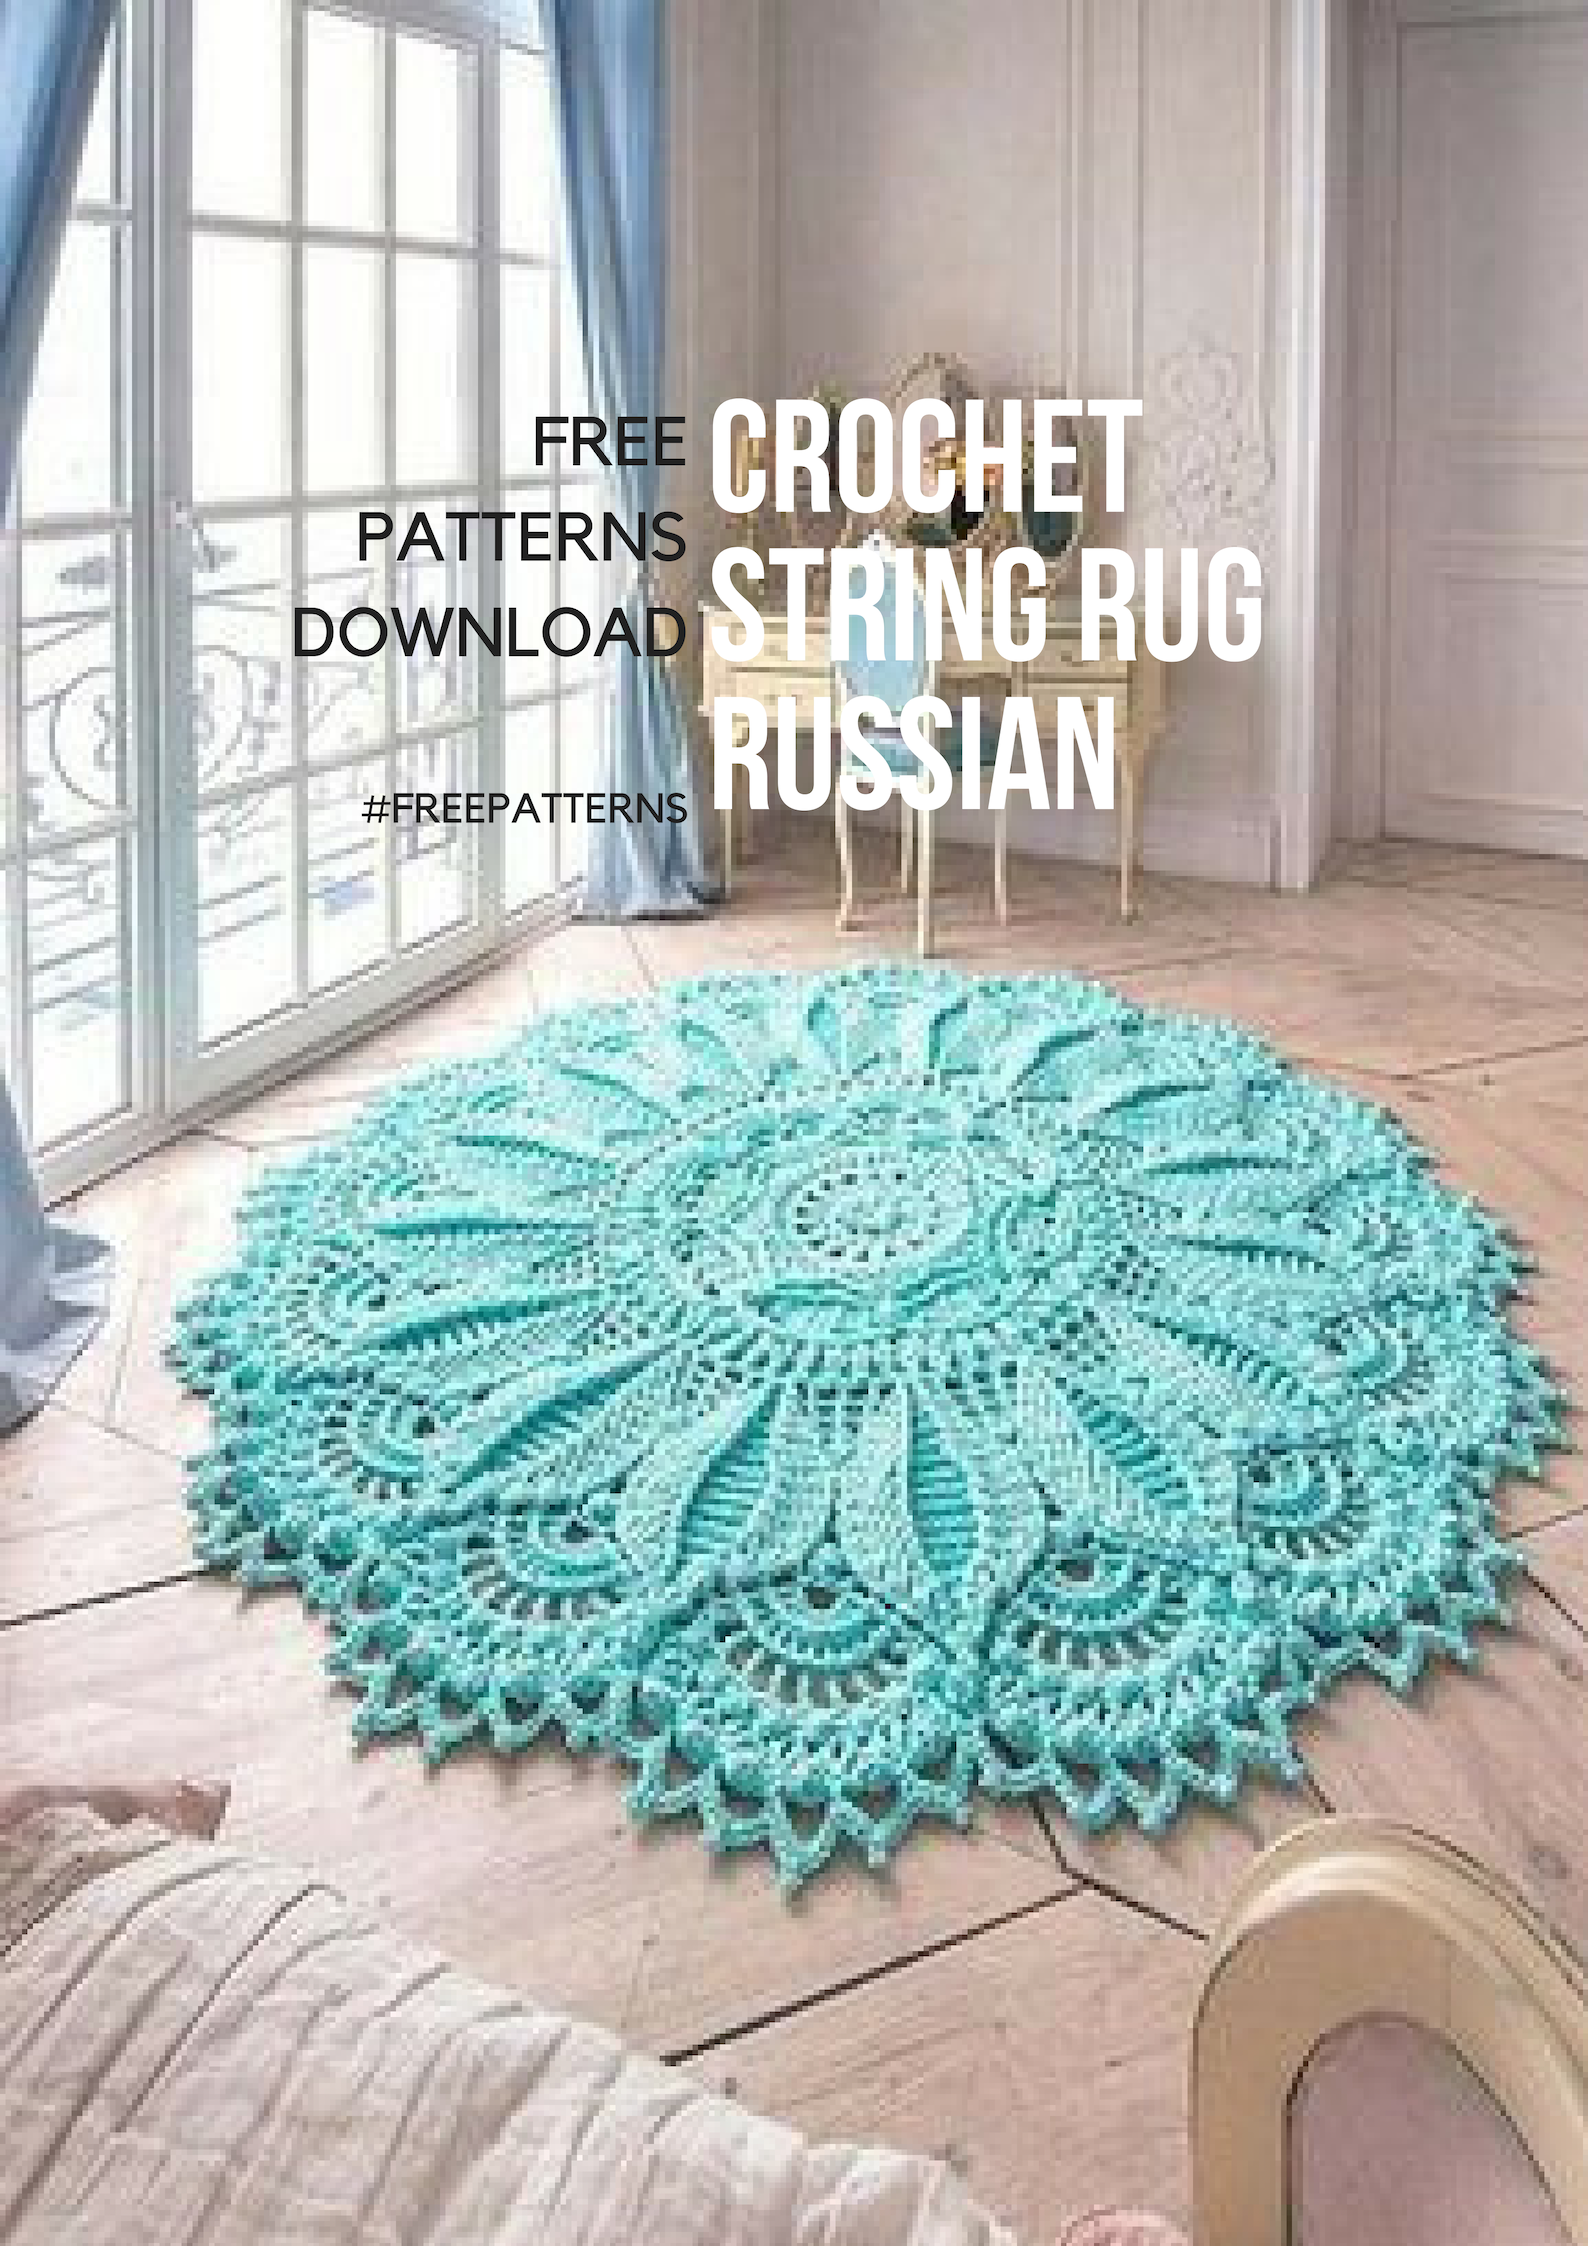 round rug knit carpet baby/'s rug hand knitted rug decor home Round carpet Doily rug crochet rug Round brown rug 75 cm carpet many colors